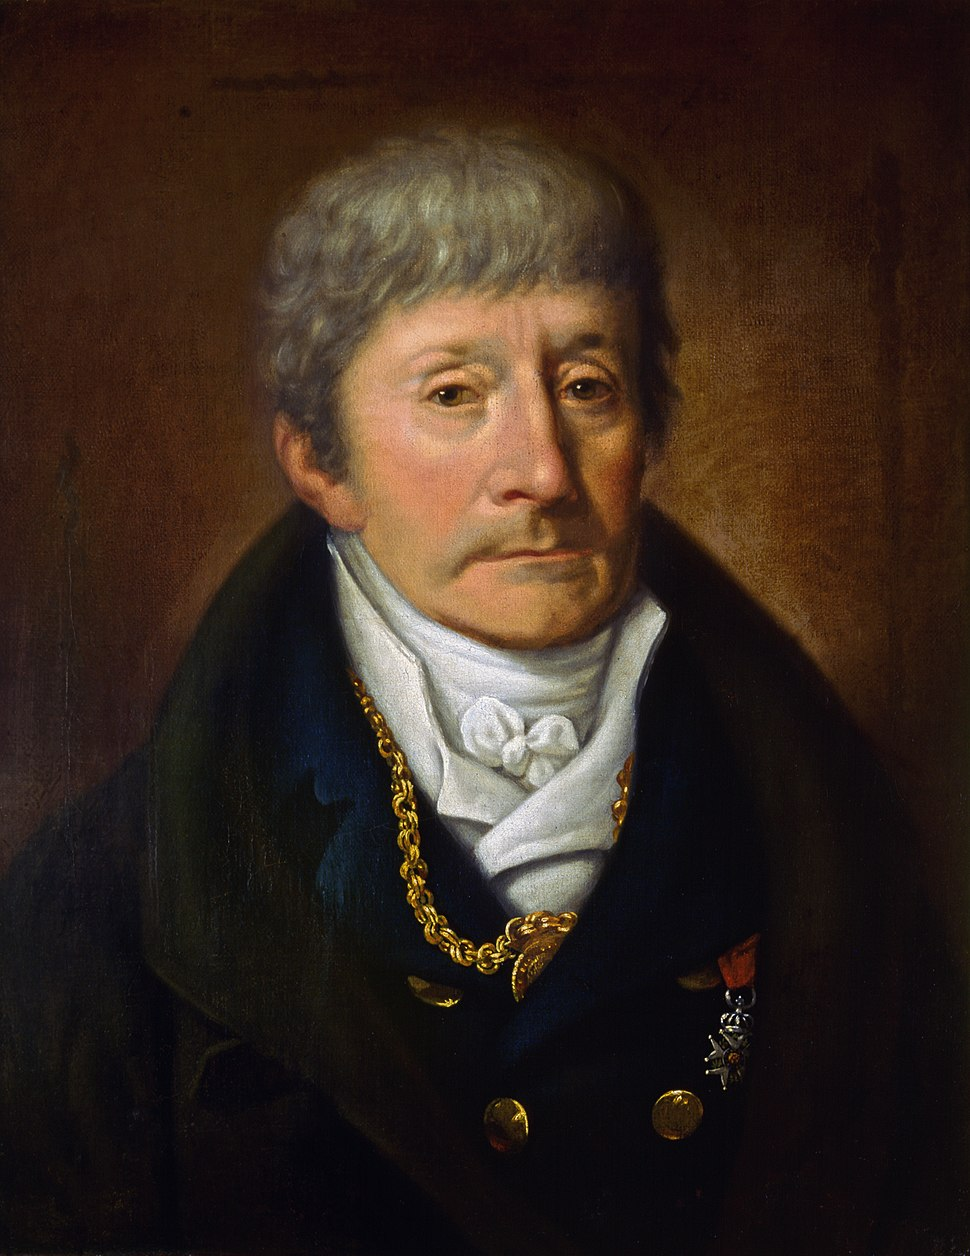 Antonio Salieri painted by Joseph Willibrord M%C3%A4hler